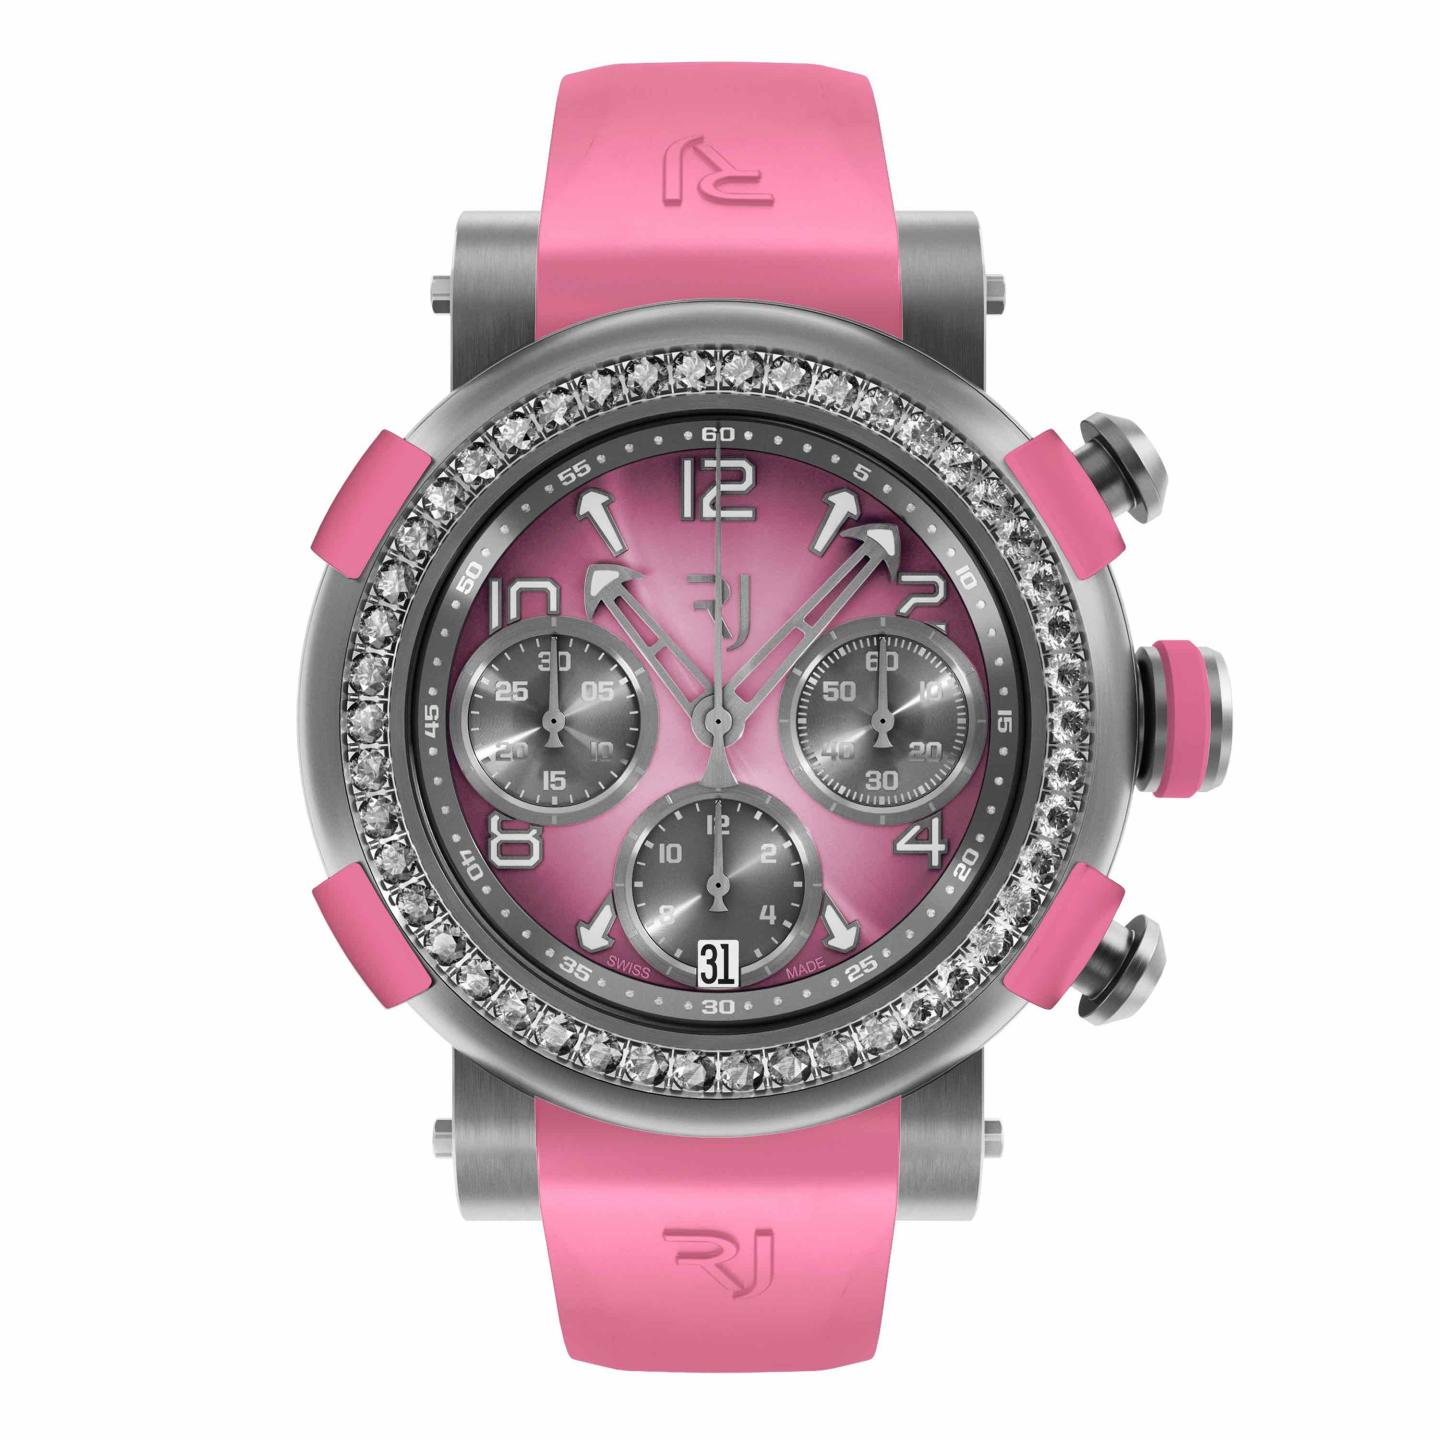 Arraw Chronograph titanium pink diamonds